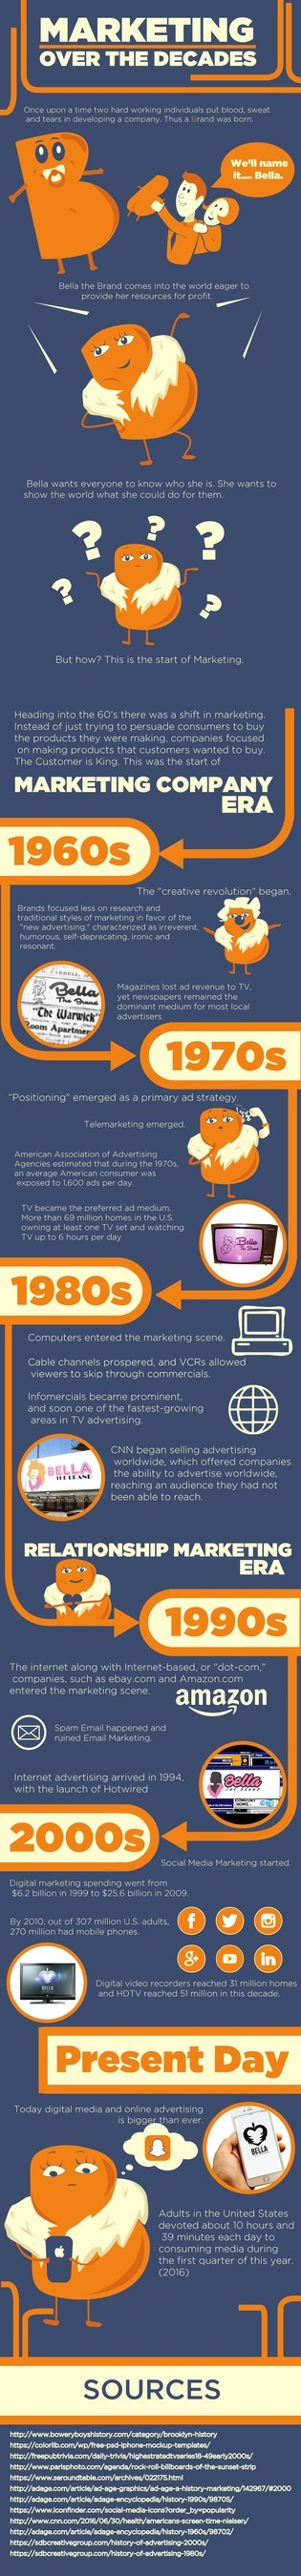 "Spring 2017 Mark Smith Yellow Pages United Scholarship Winning Infographic ""Marketing Over the Decades"" by Diego Casillas"